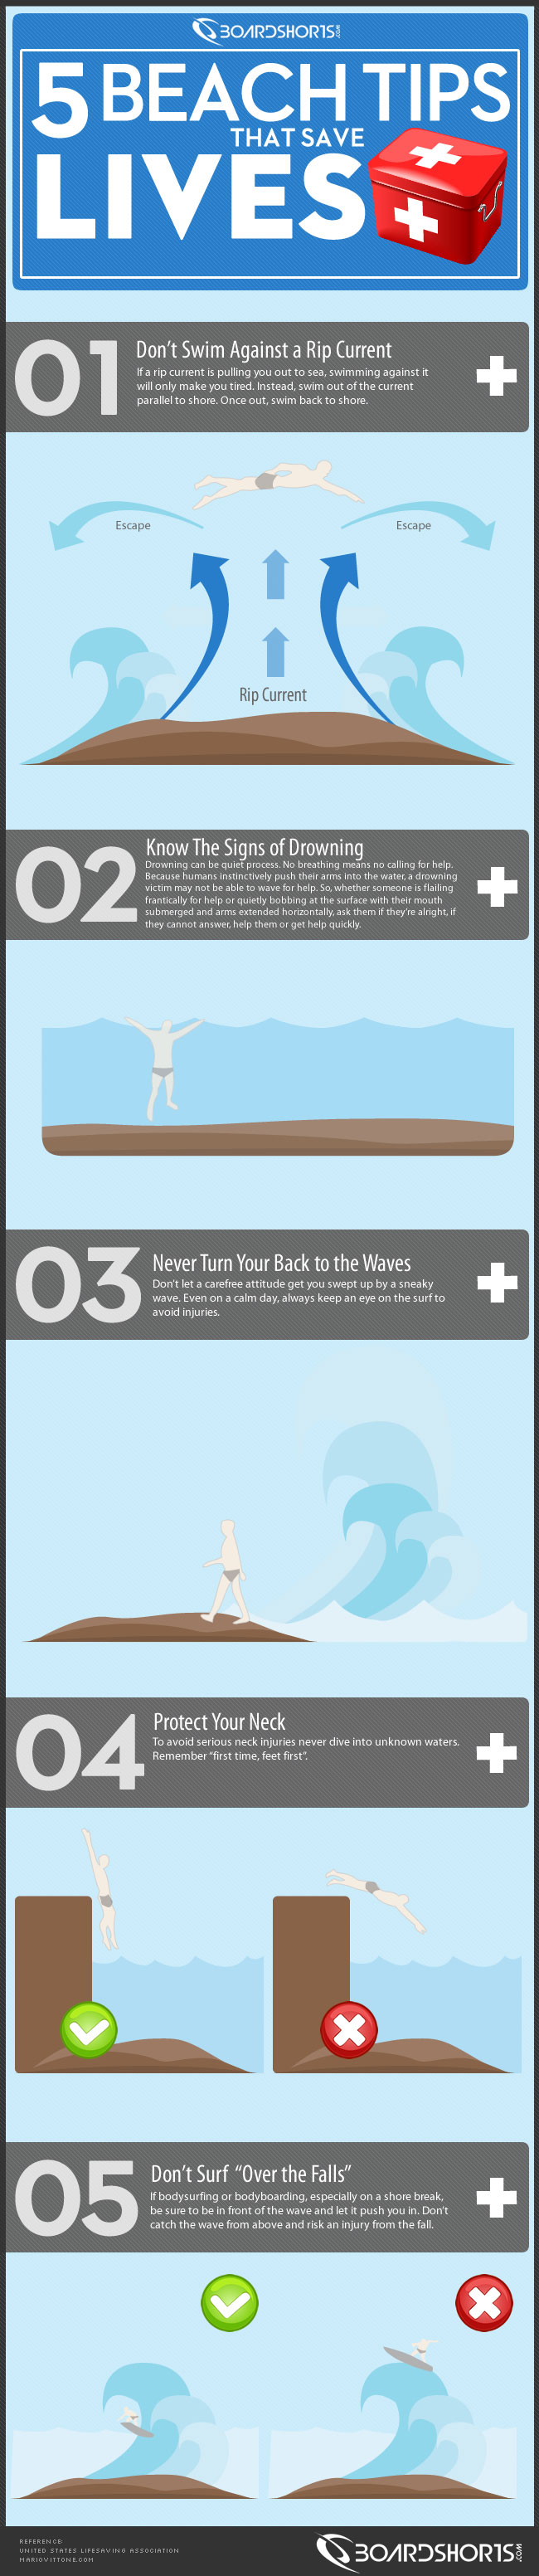 Beach tips that save lives infographic